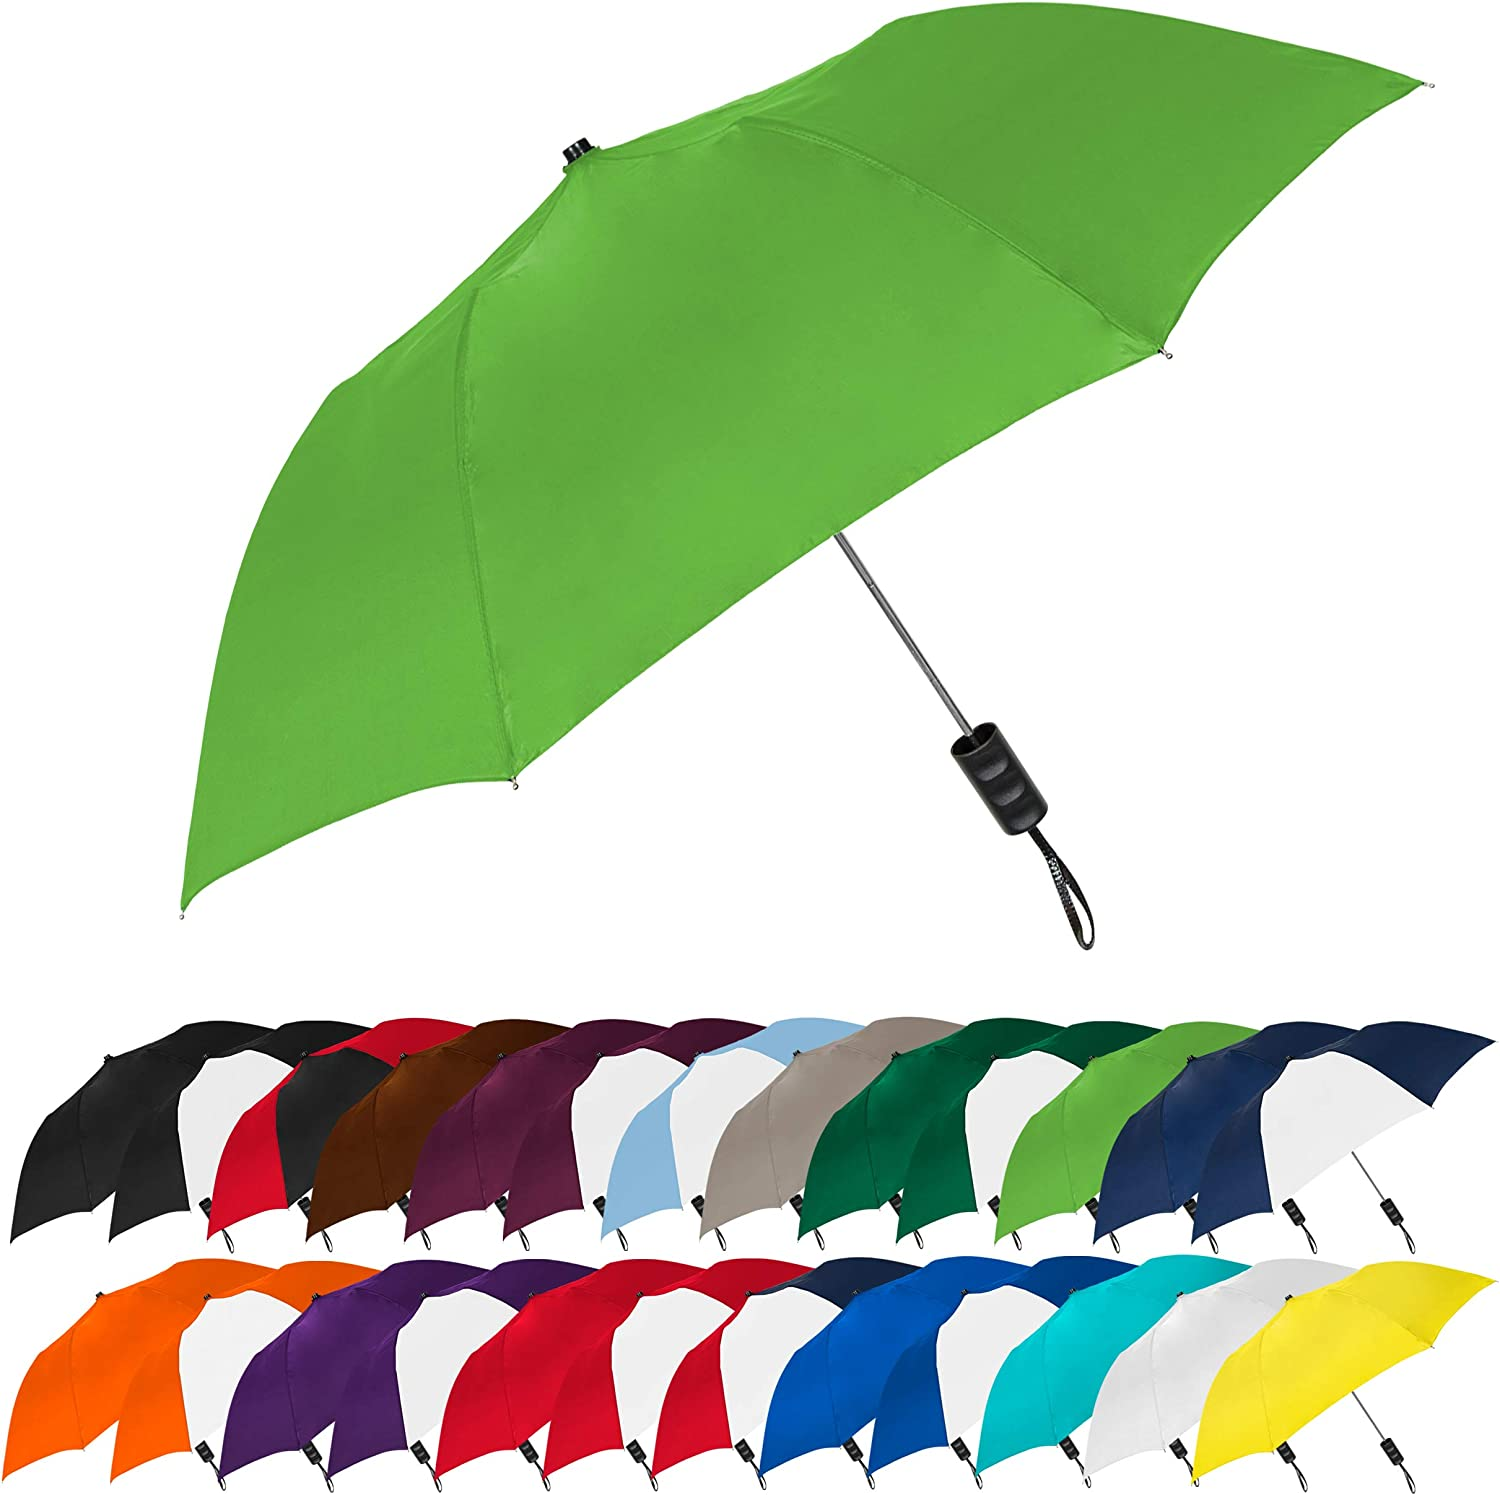 STROMBERGBRAND UMBRELLAS Spectrum Popular Style Automatic Open Close Small Light Weight Portable Compact Tiny Mini Travel Folding Umbrella for Men and Women, Lime Green